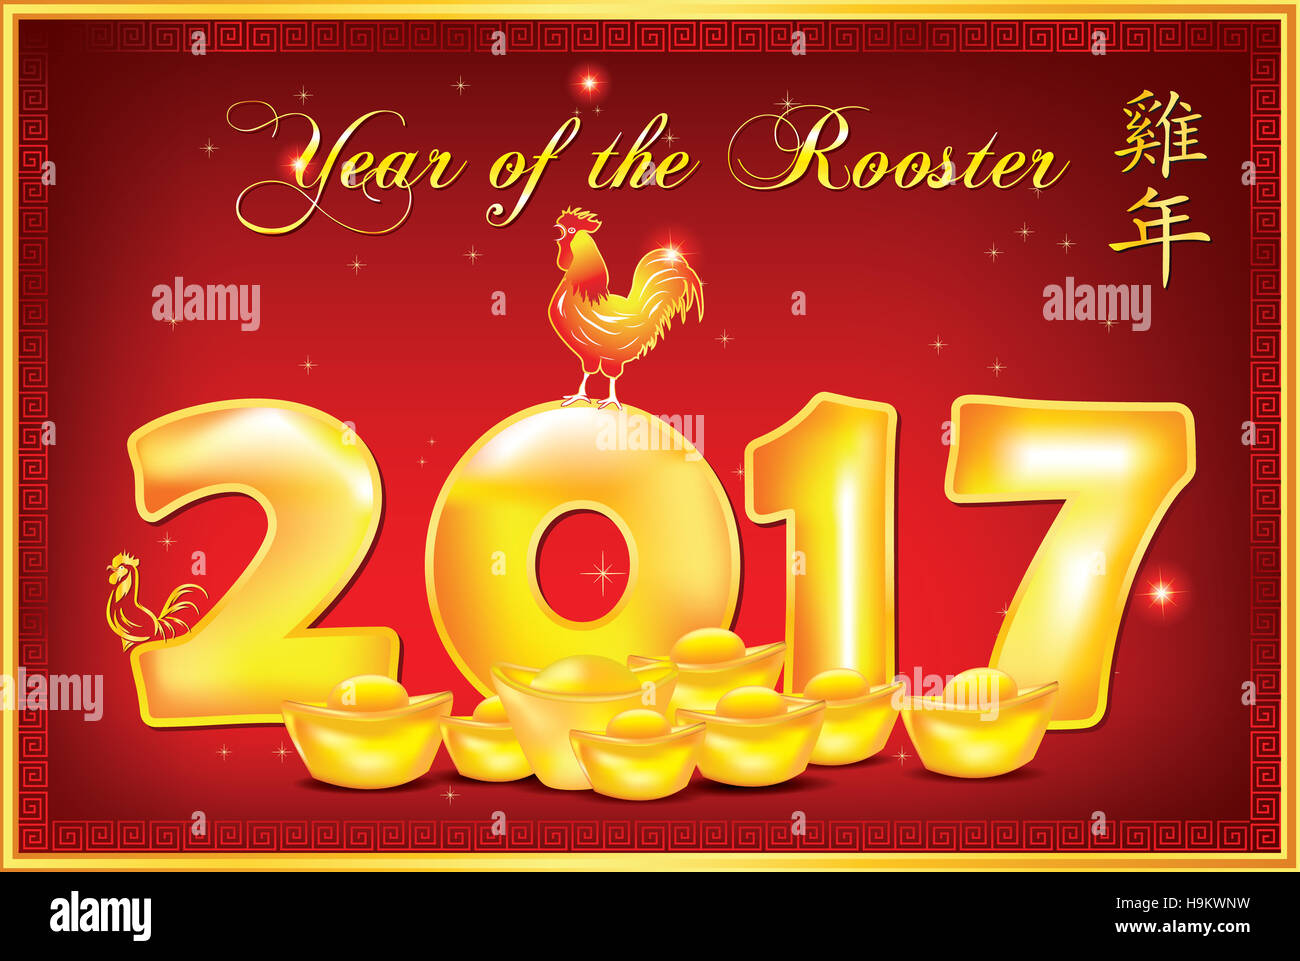 printable greeting card for the chinese new year 2017 chinese text year of the rooster